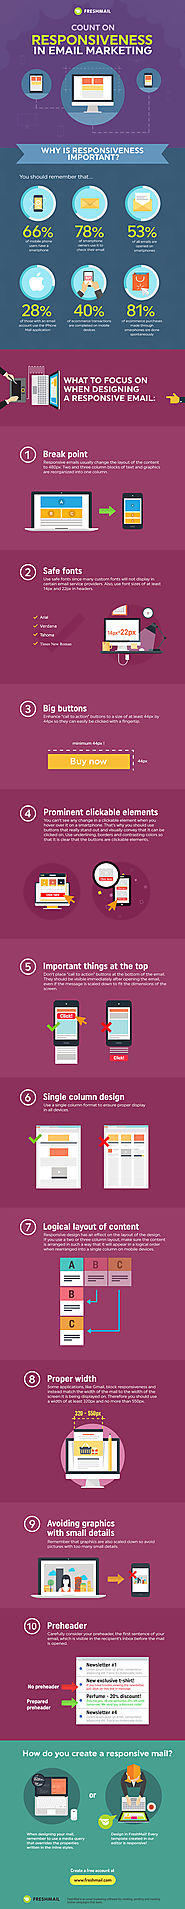 Make responsive email newsletters! #infographic | FreshMail Email Marketing Blog